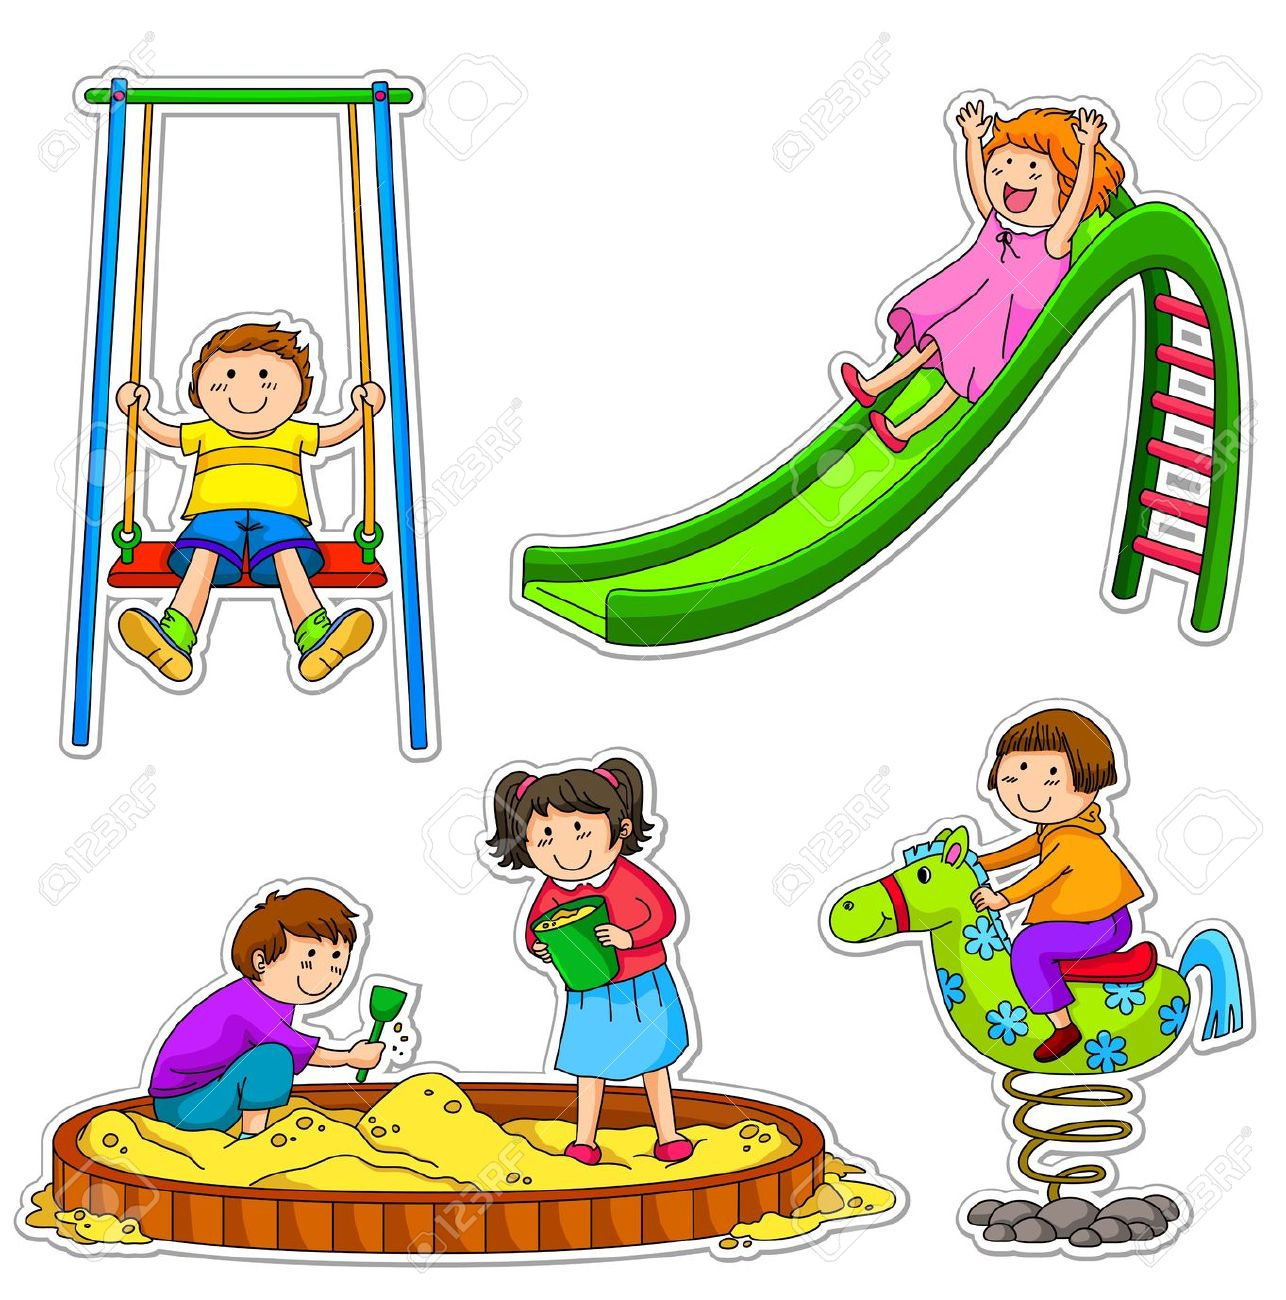 Outside clipart childrens park. Play free download best